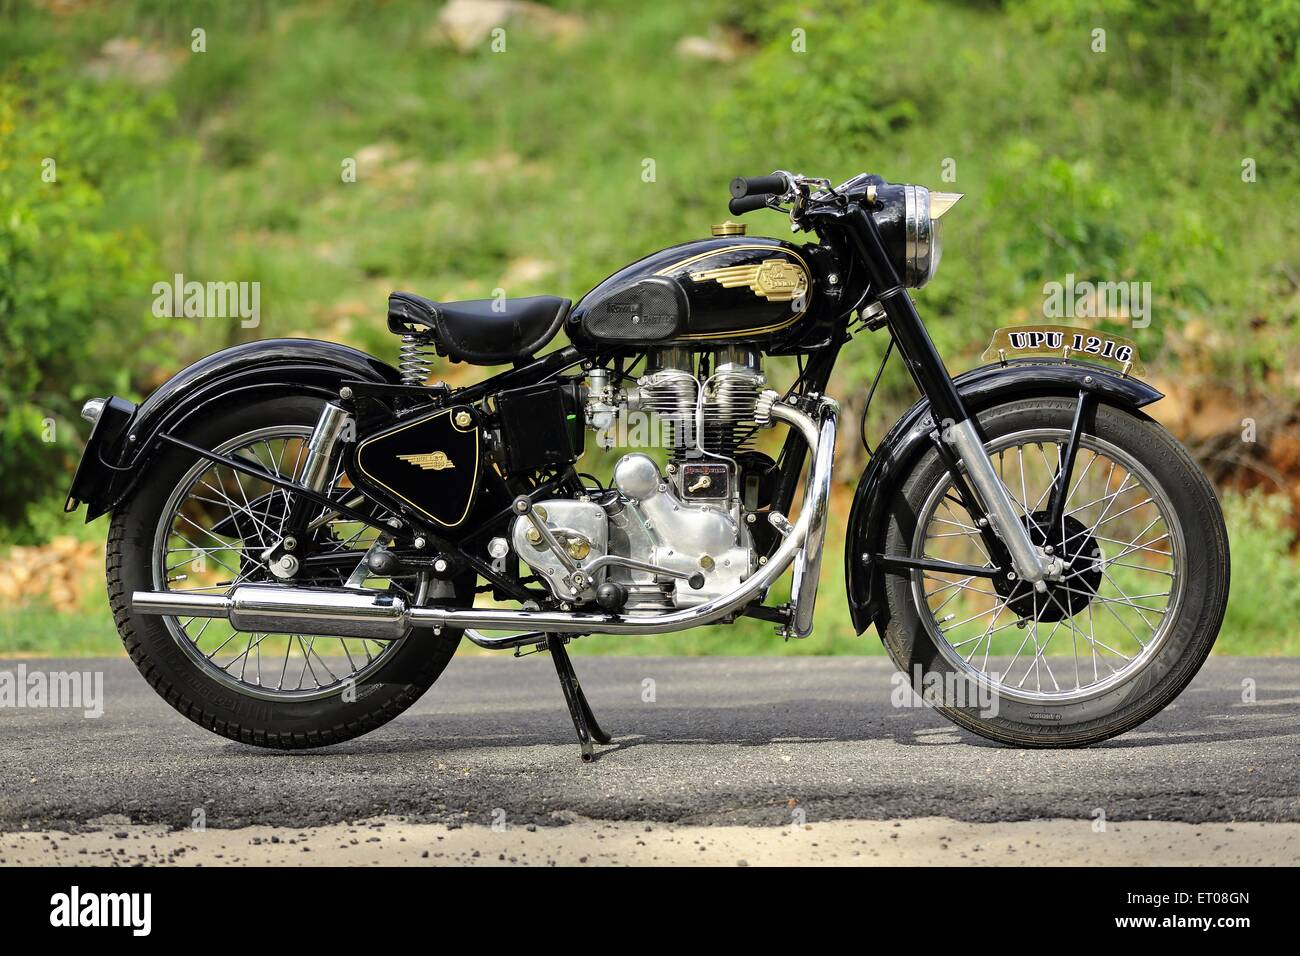 Royal enfield bullet pictures -  Royal Enfield Bullet G2 350 Cc 1960 Vintage Motorcycle Stock Photo